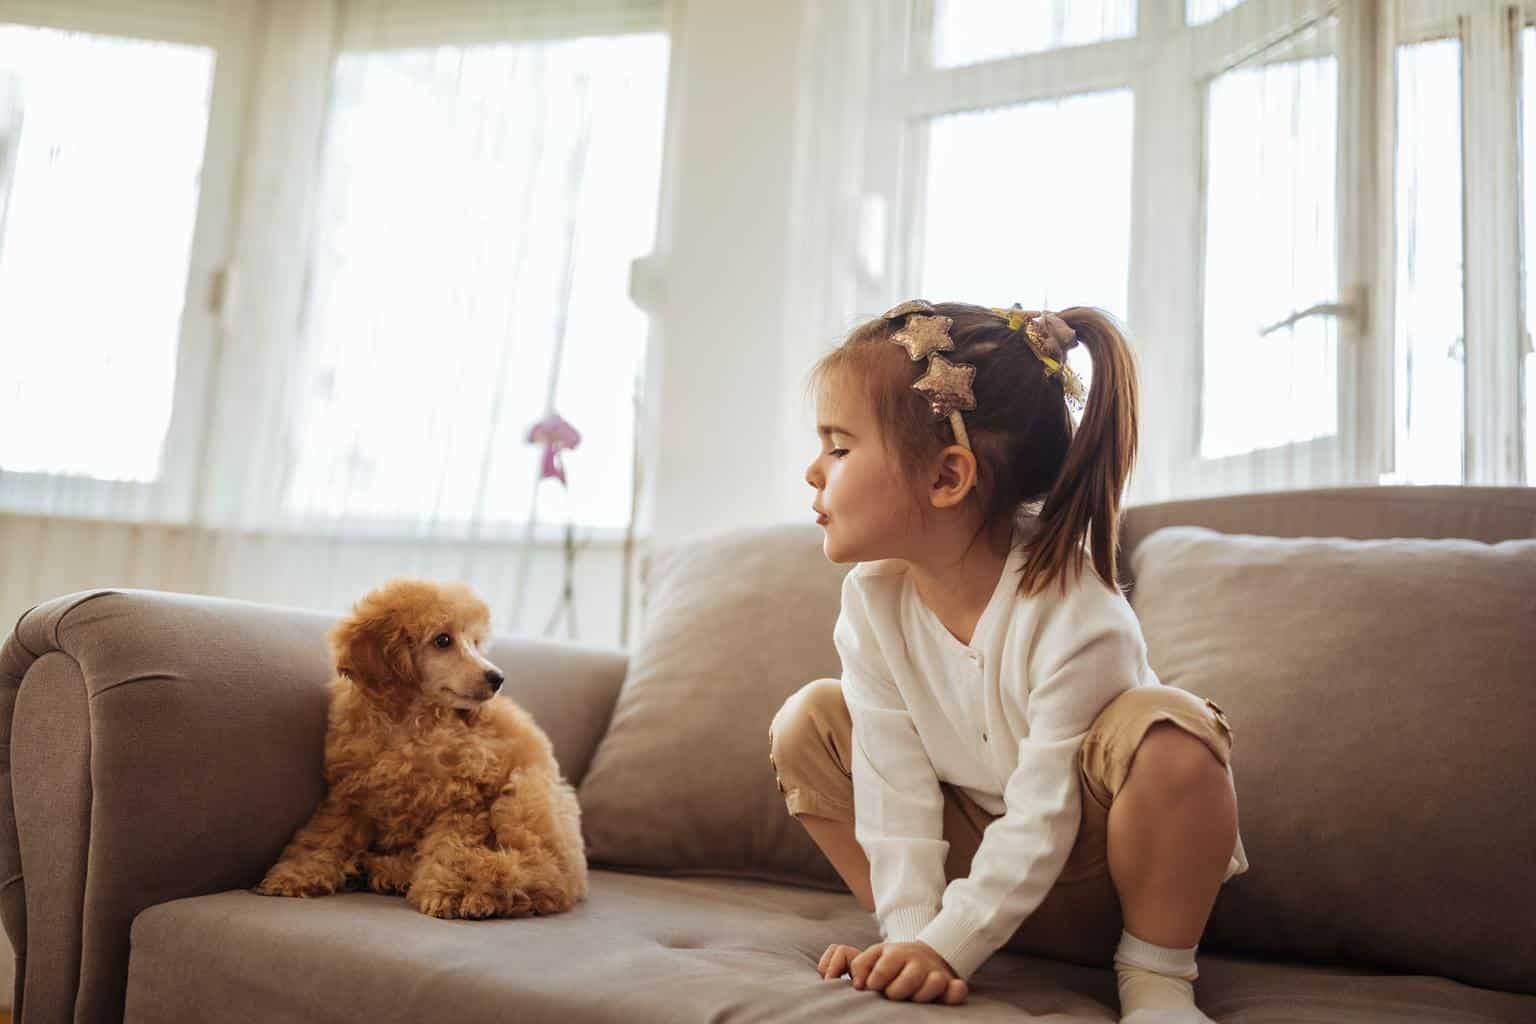 Playing with her new puppy